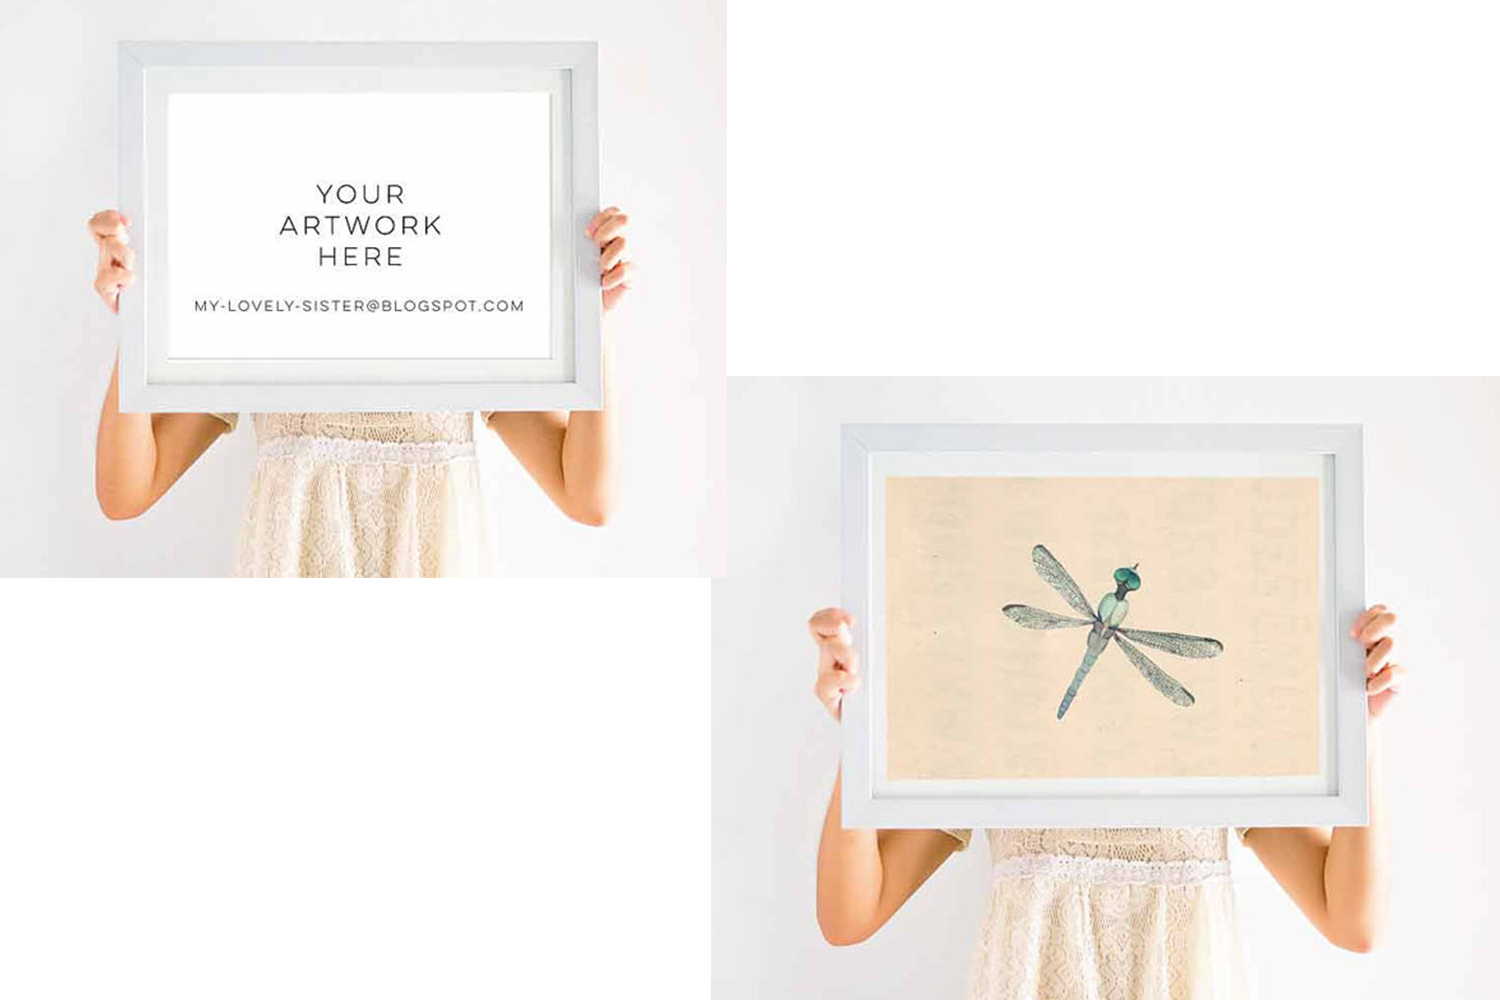 Simple wood frame mock up, Empty White Wooden Frame, White Wood Display Empty Frame, Simple Blank Empty Frames, Blank Frame Mockups example image 2